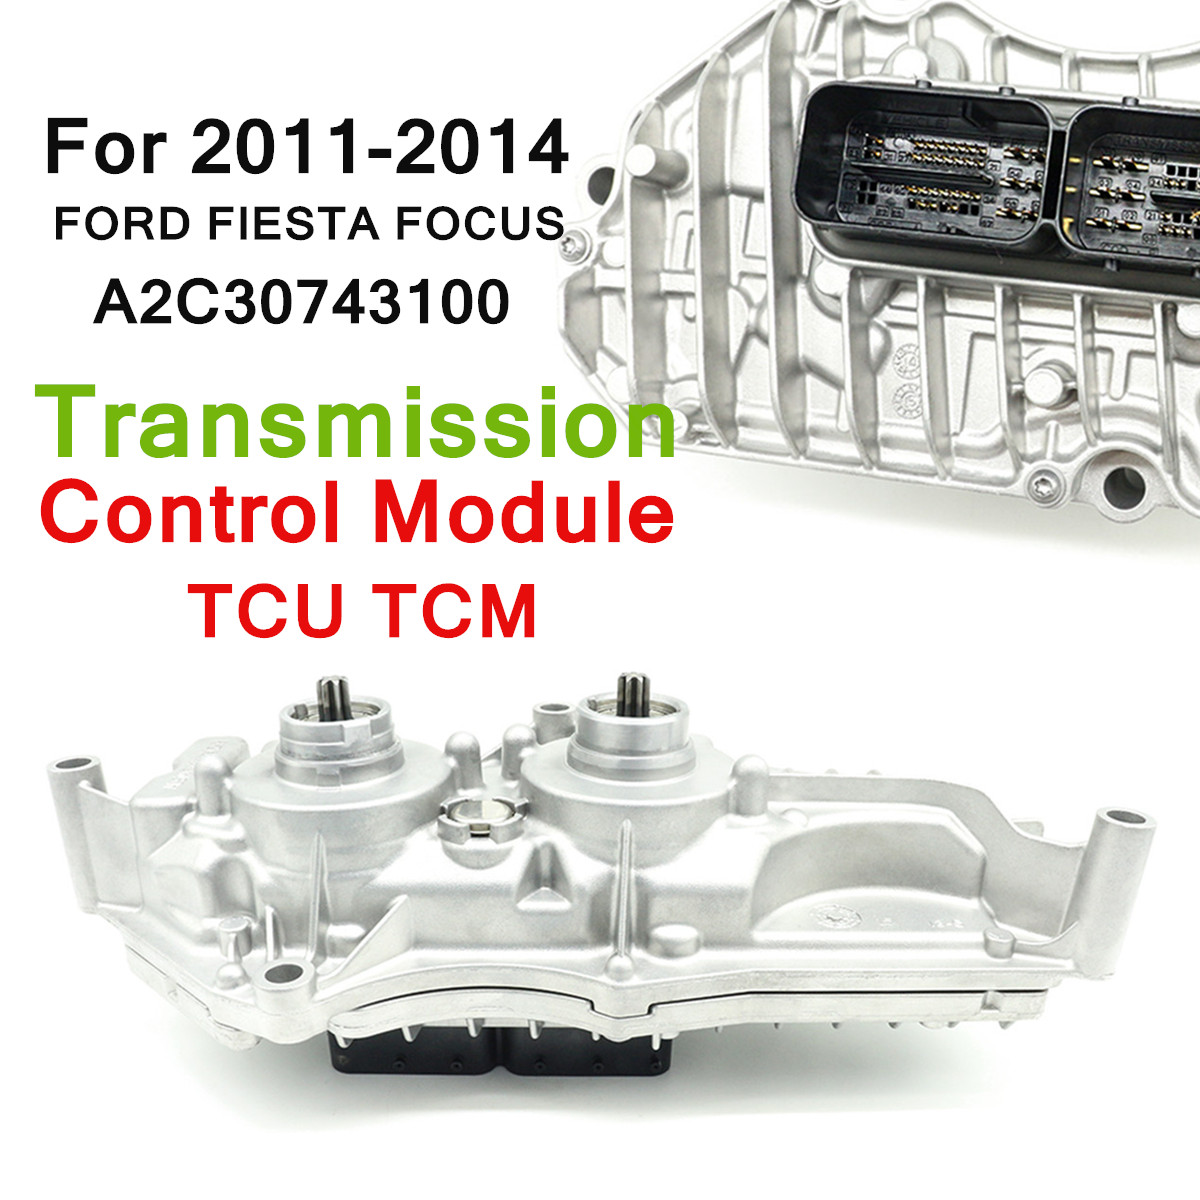 Transmission Control Module TCU TCM for FORD FIESTA-FOCUS 2011-2014 A2C30743100 Direct Replacement Silver Auto Replacement Parts